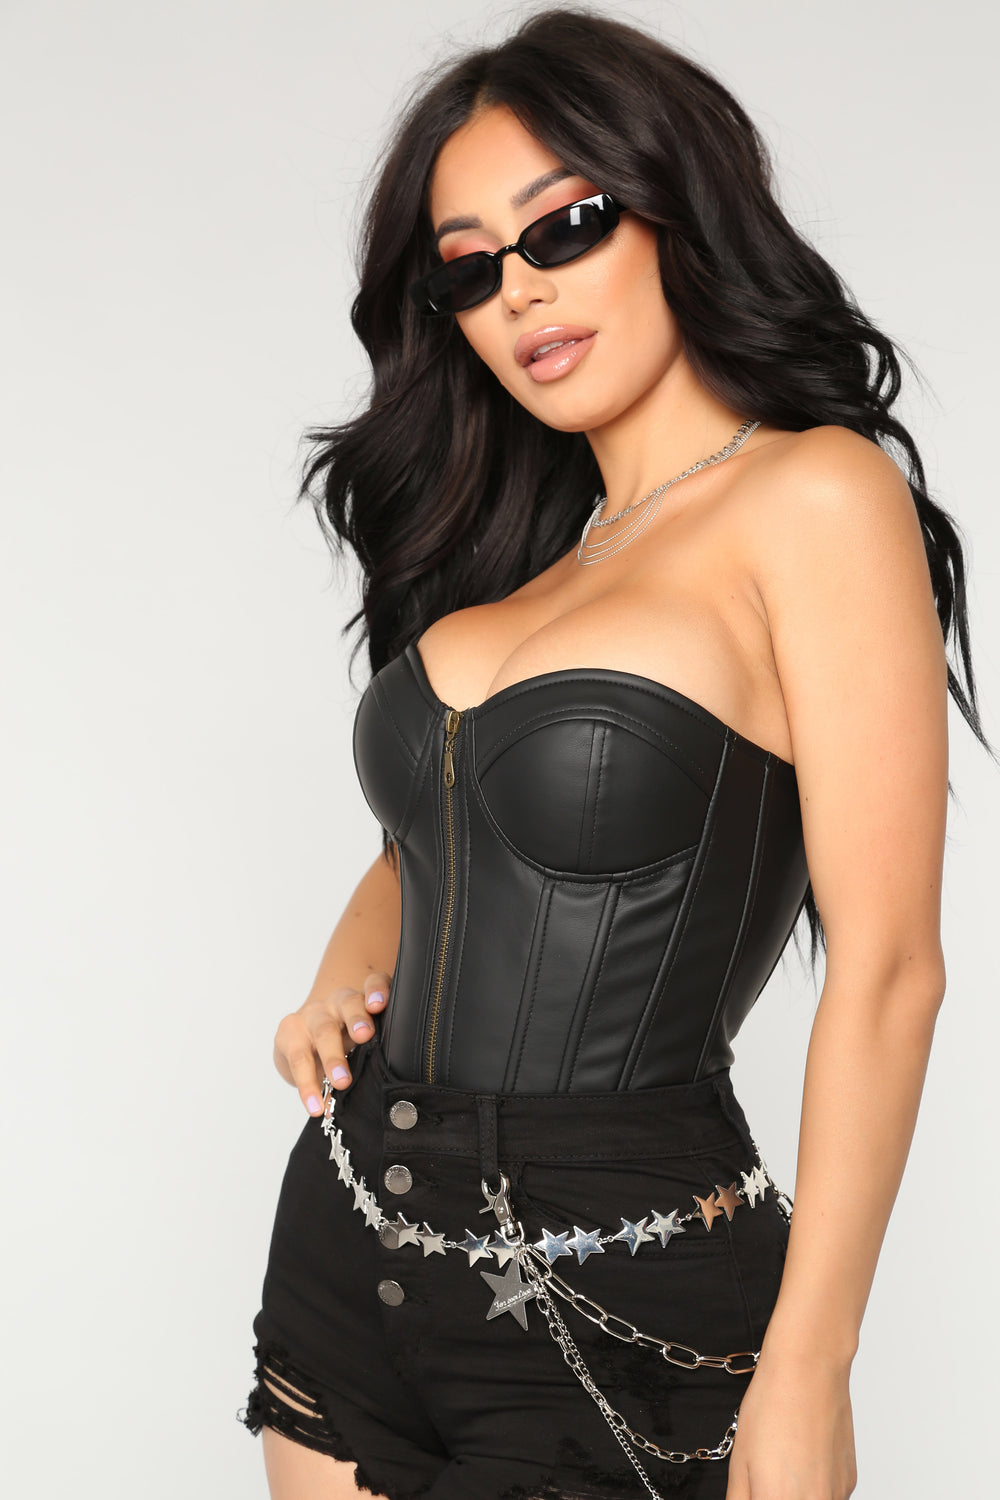 Simply Seductive Corset Top - Black